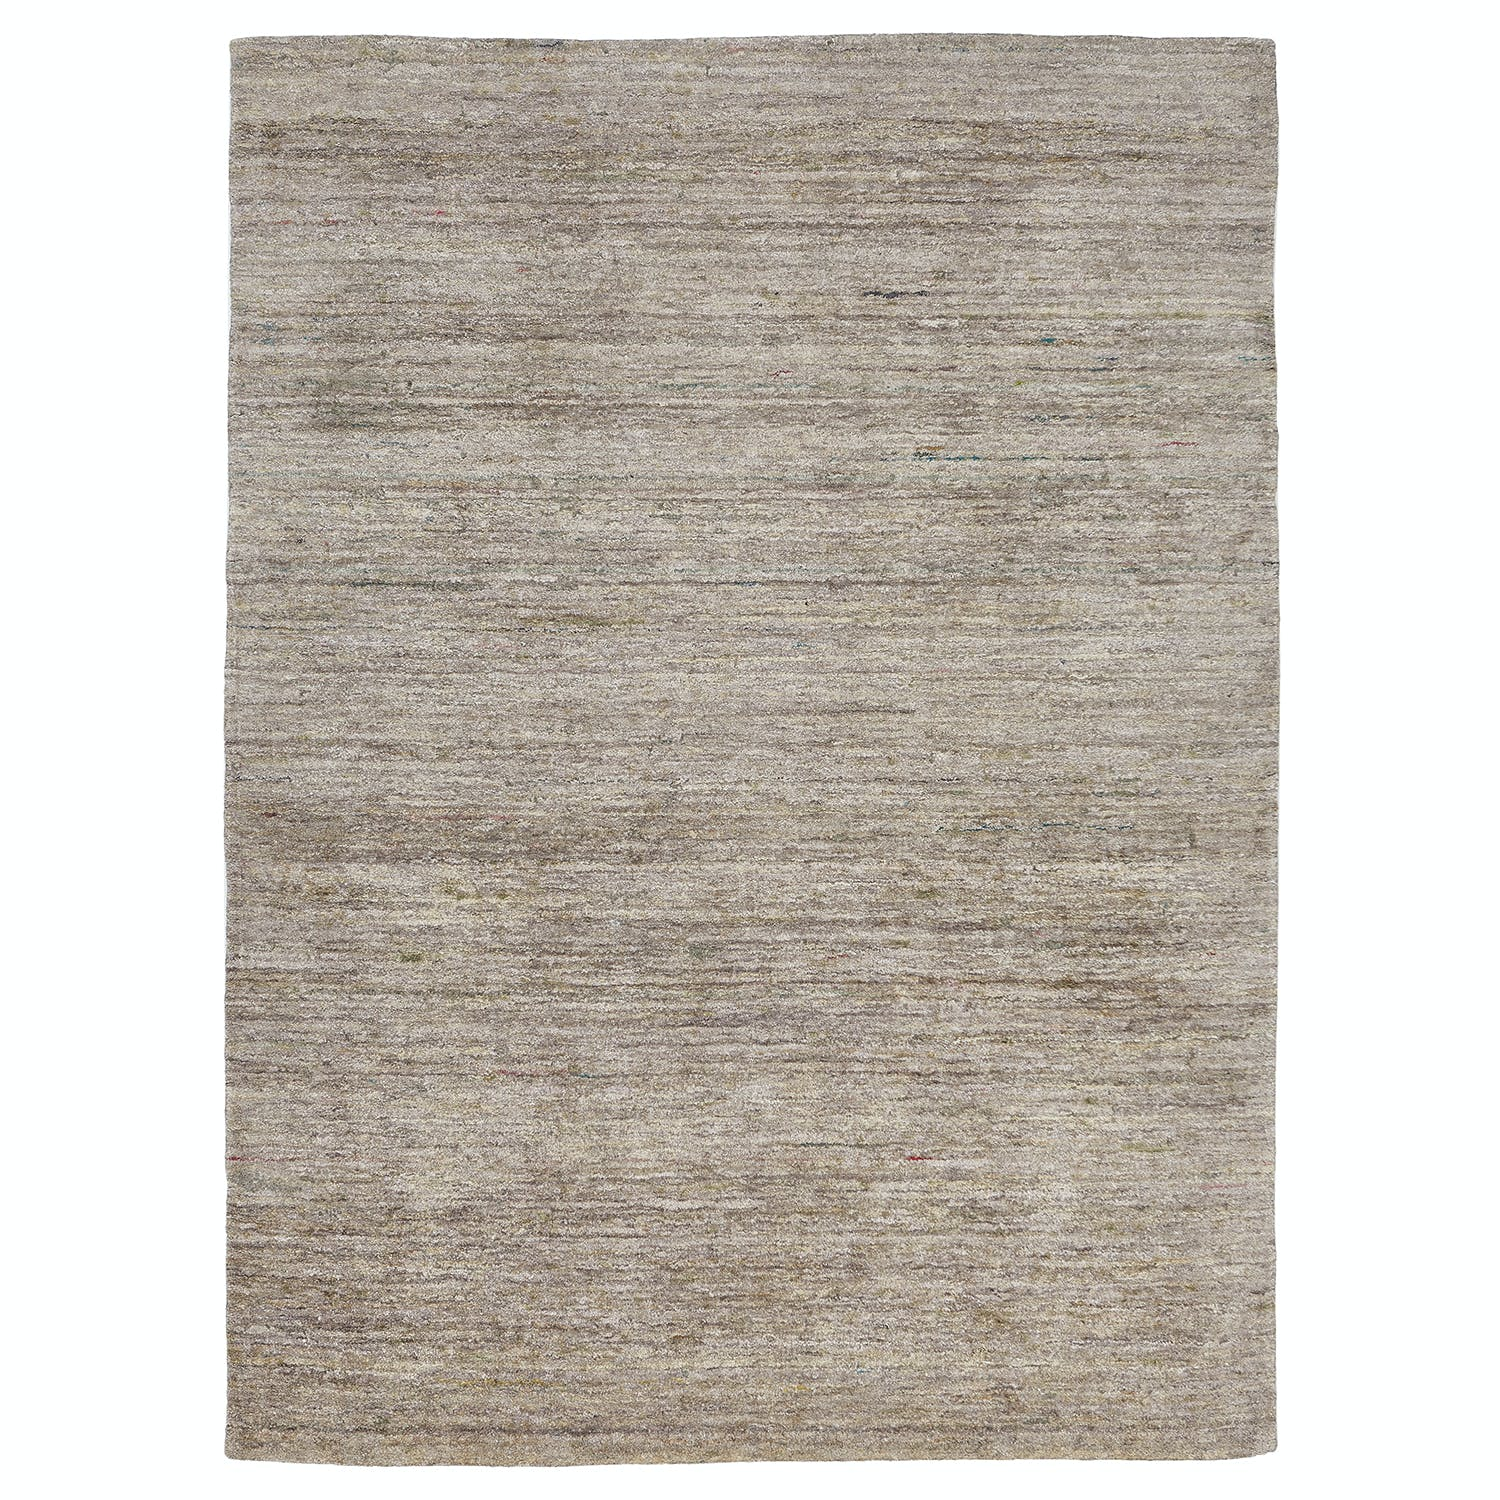 Product Image - Contemporary Rug - 5'x7'